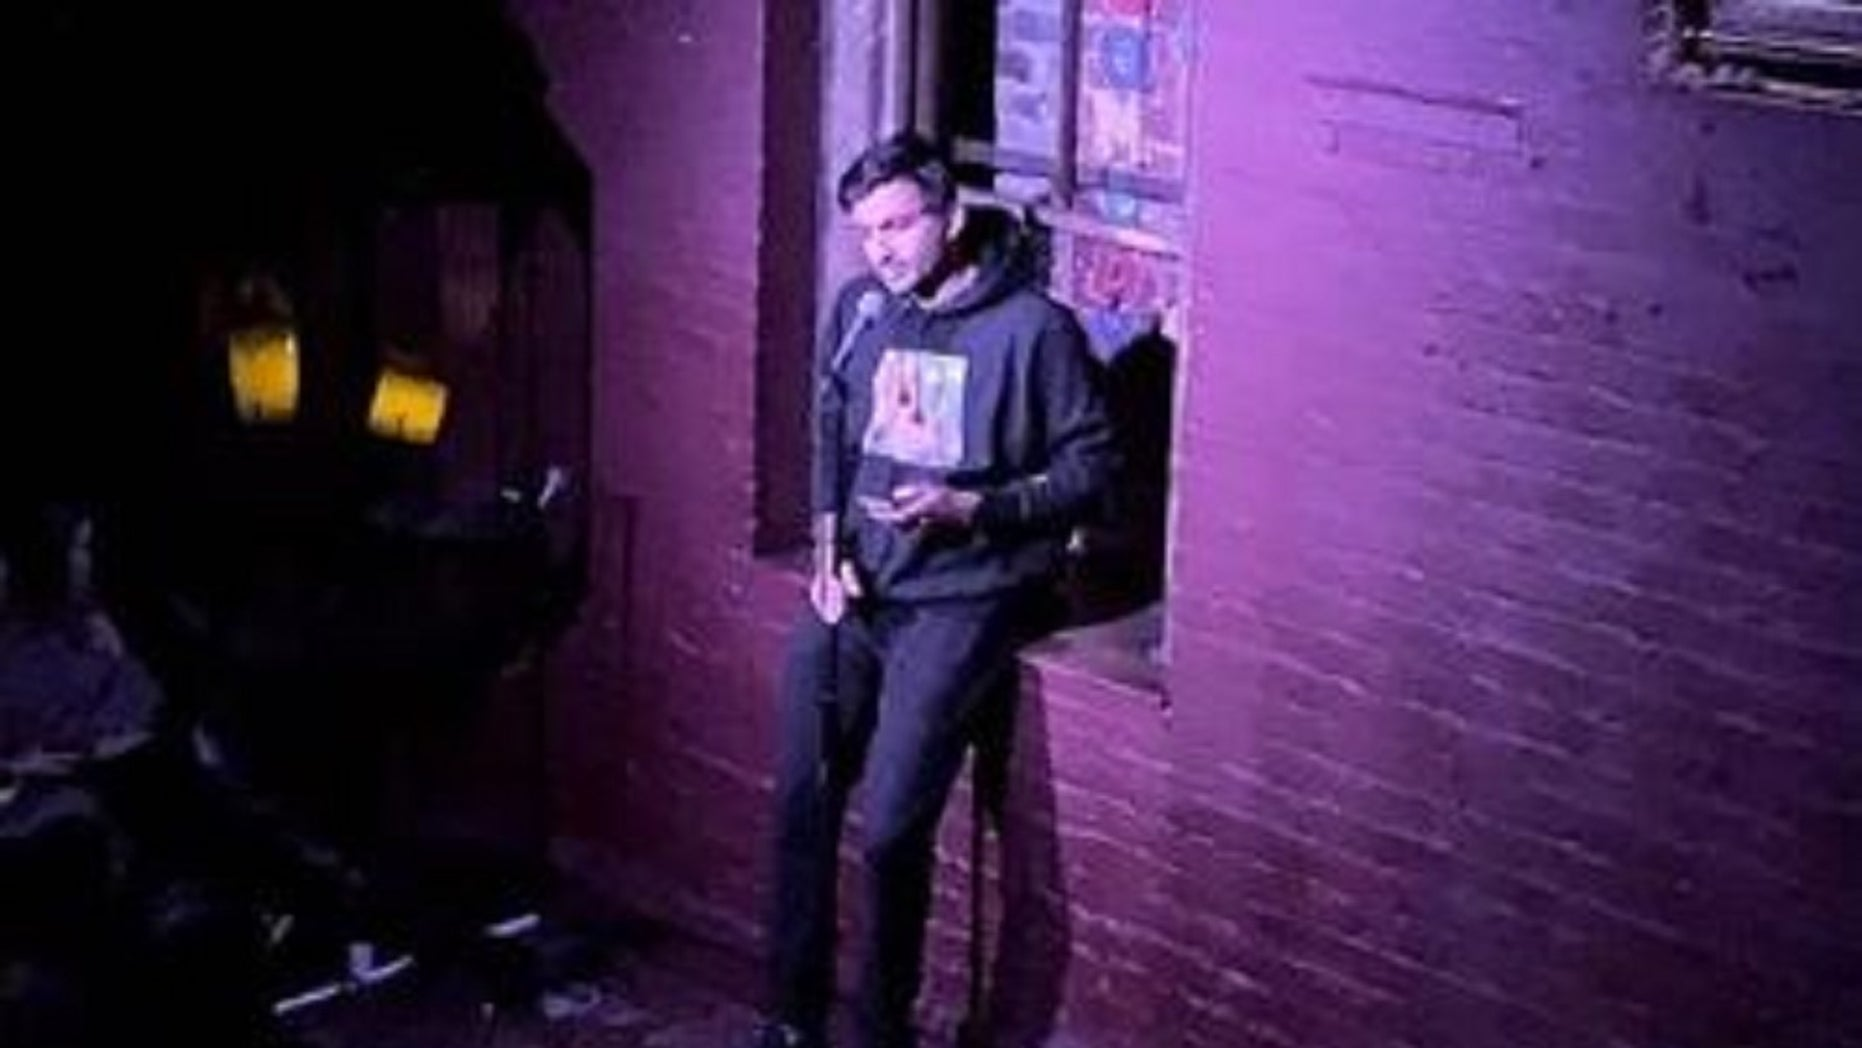 FILE: Nimesh Patel's stand-up set was cut short last Friday because the event coordinators found his jokes inappropriate.